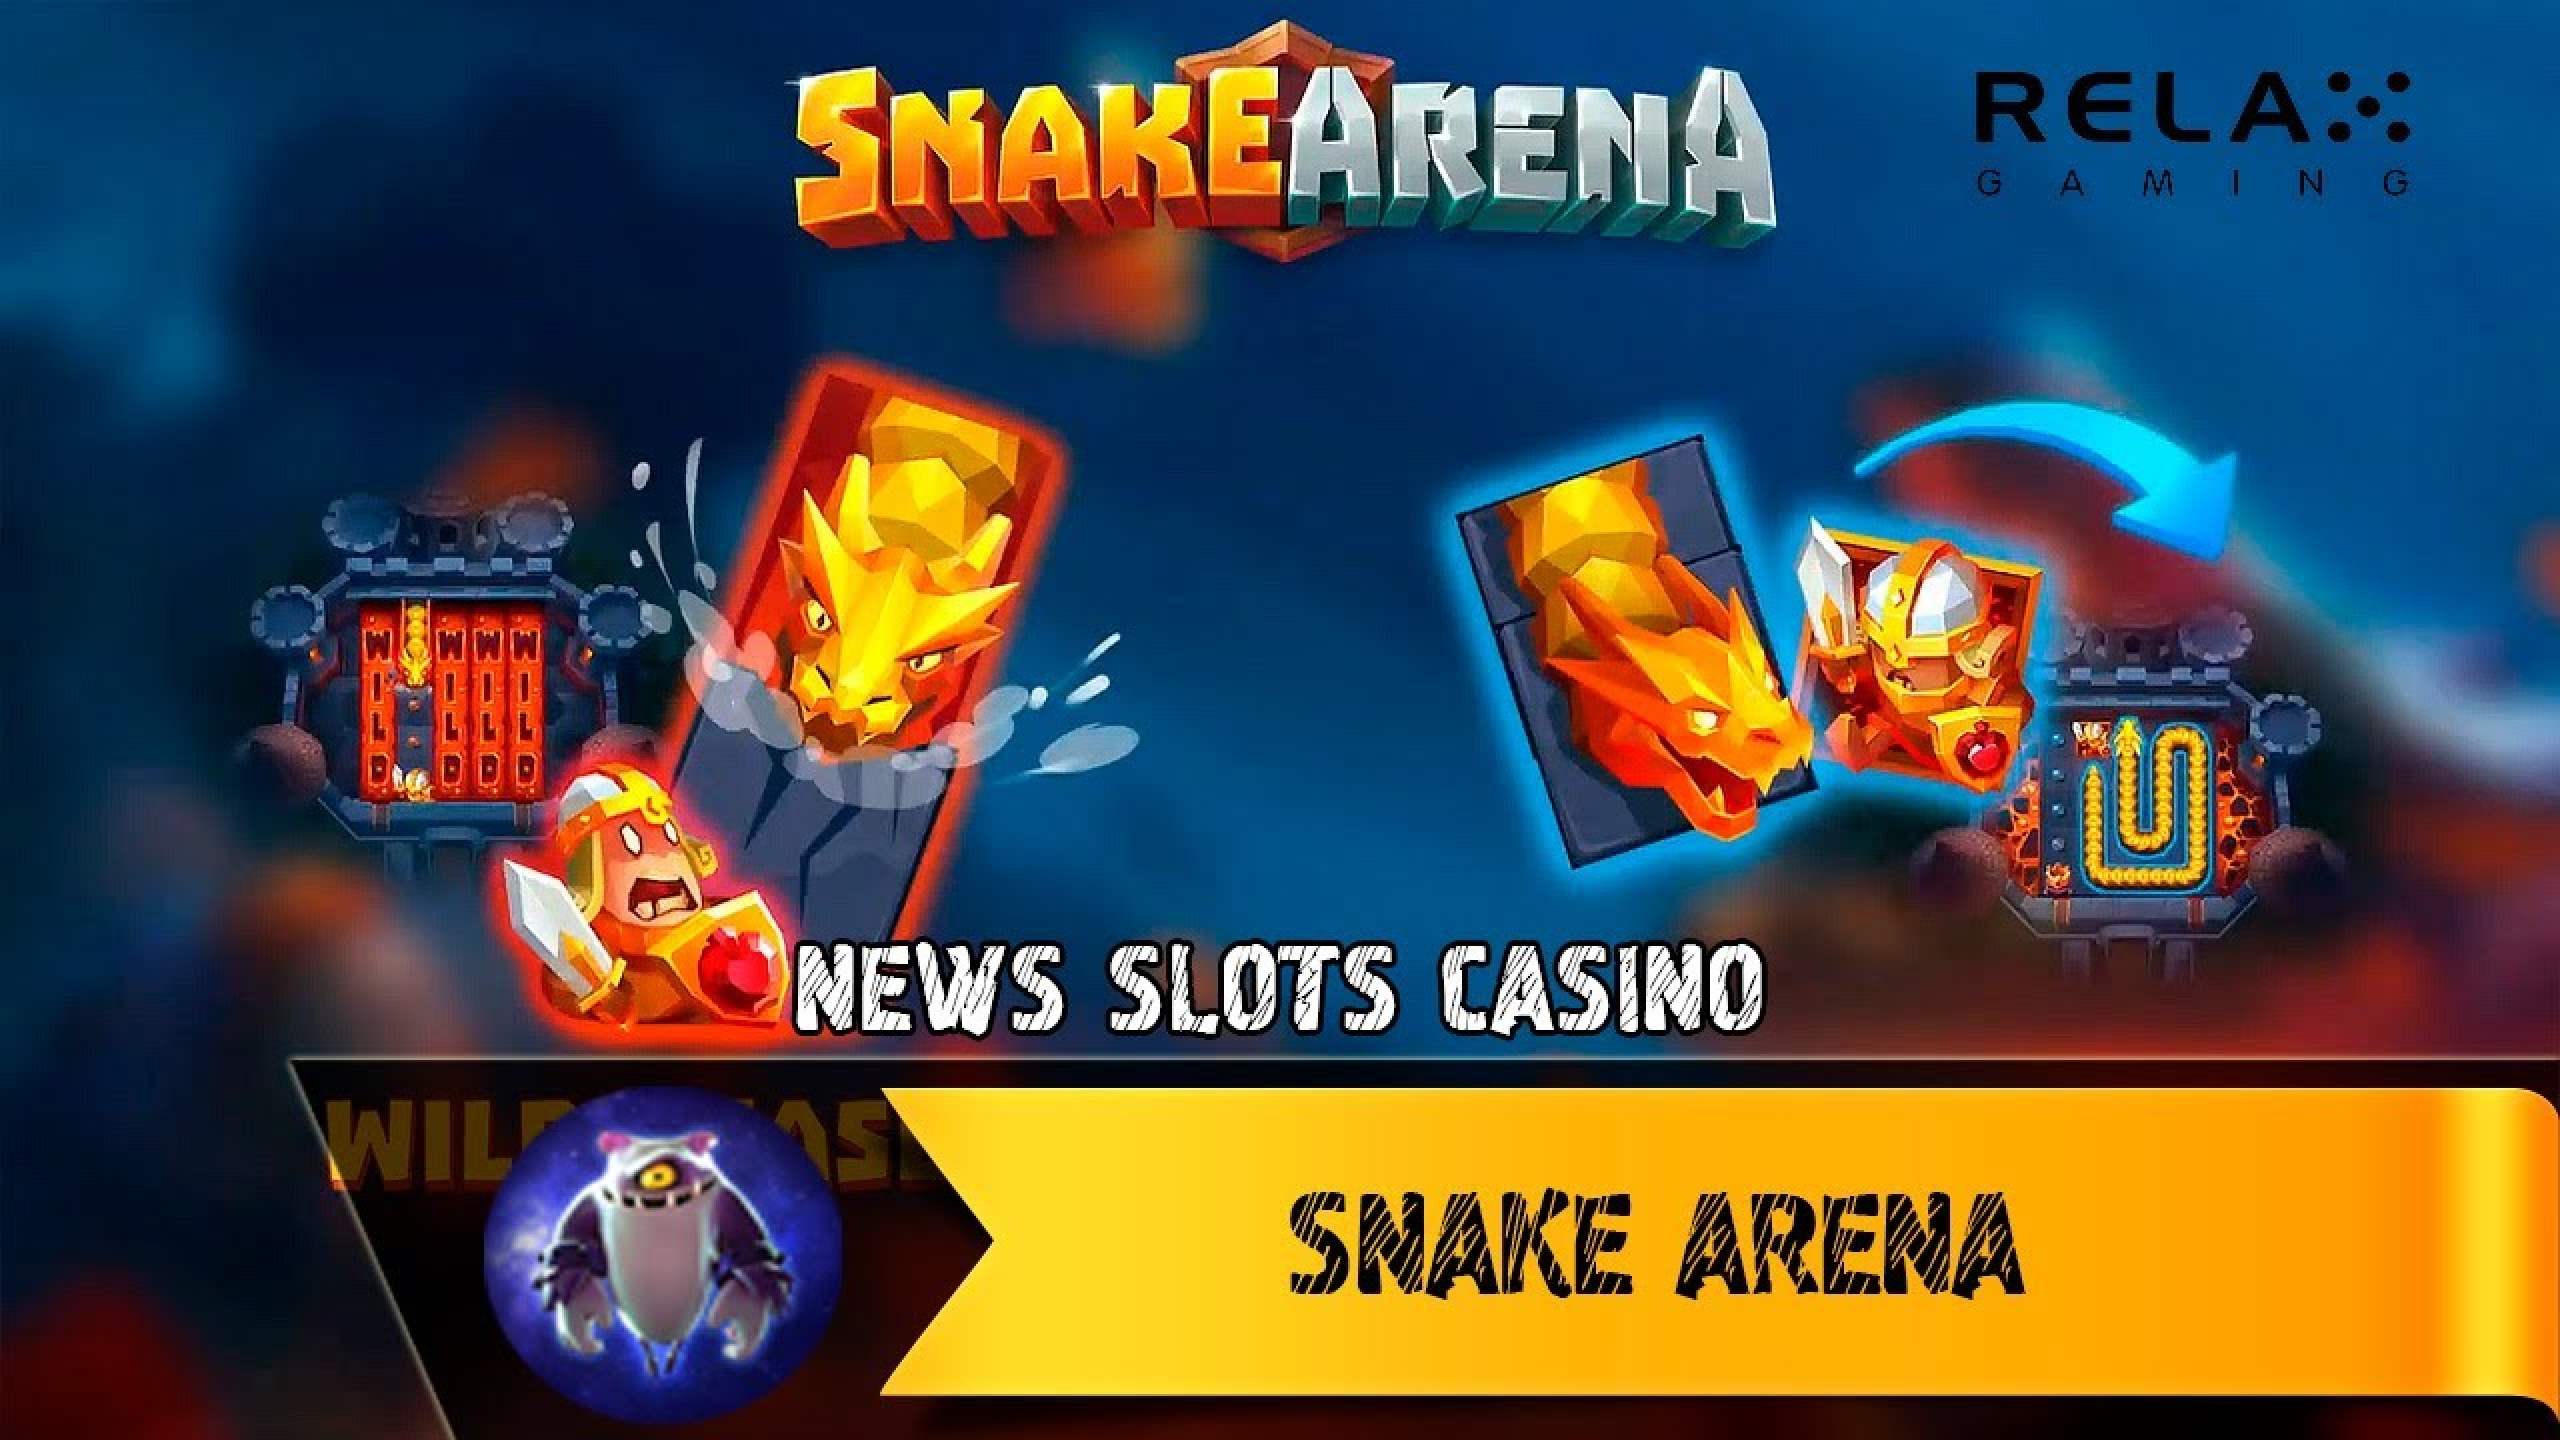 The Snake Arena Online Slot Demo Game by Relax Gaming